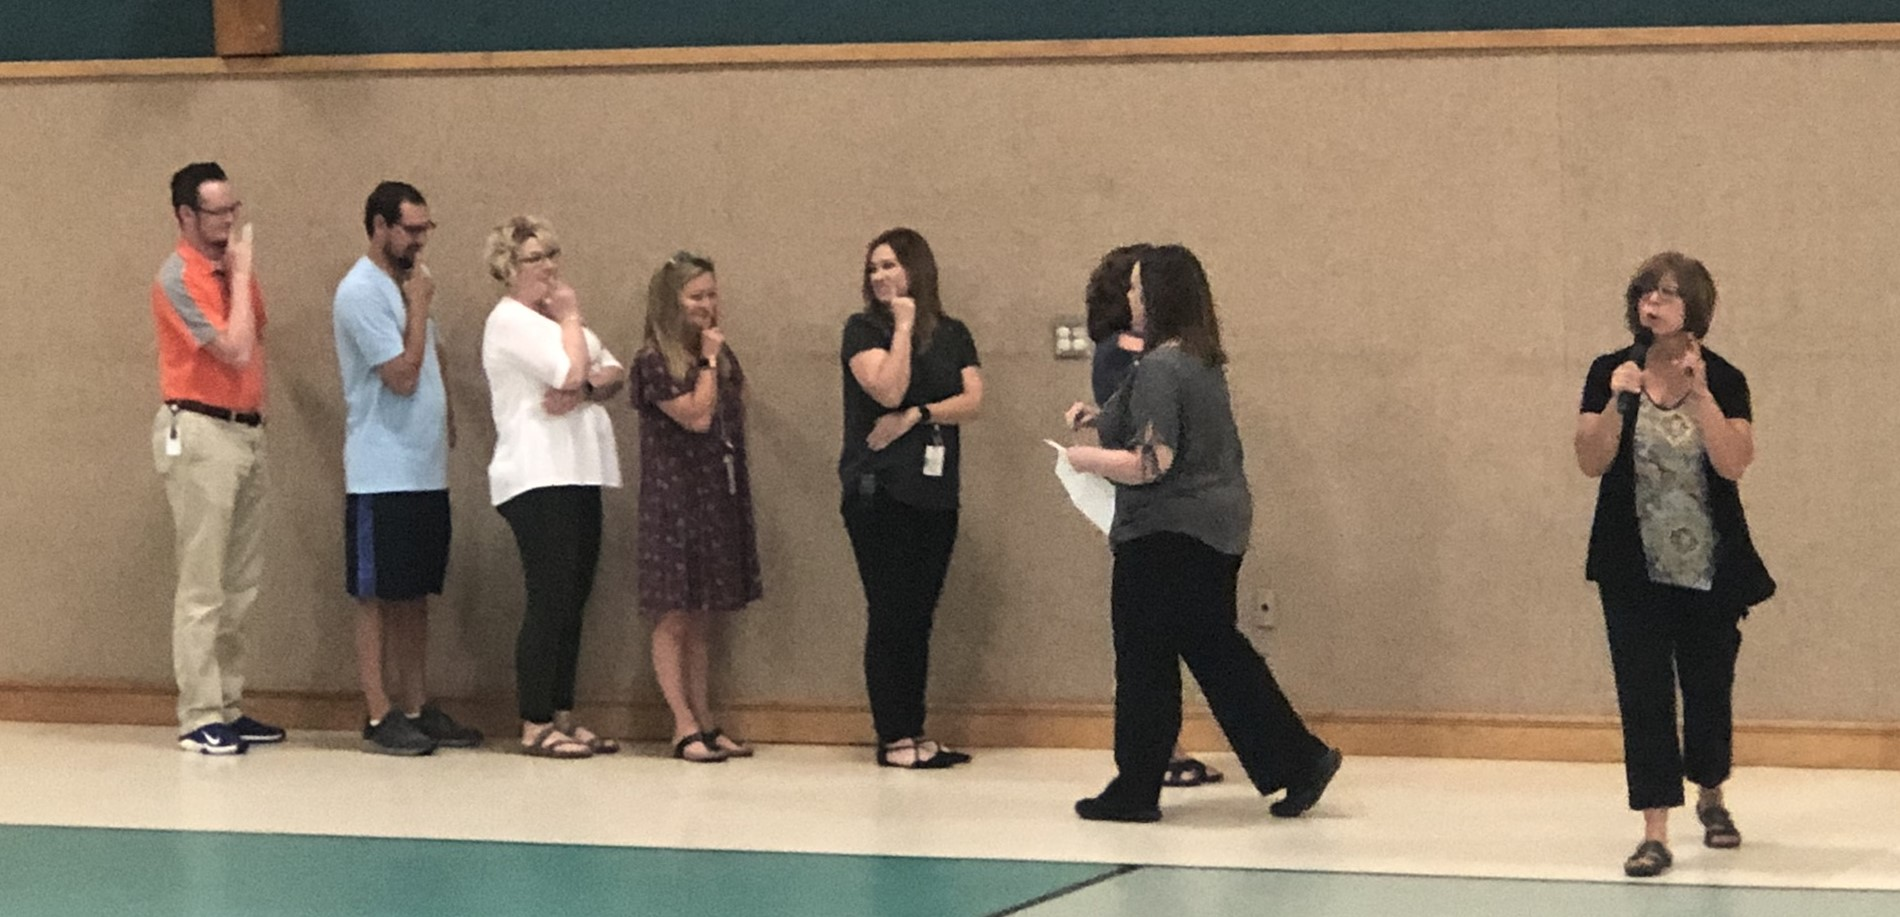 North Park teachers demonstrating expectations at PBIS assembly.